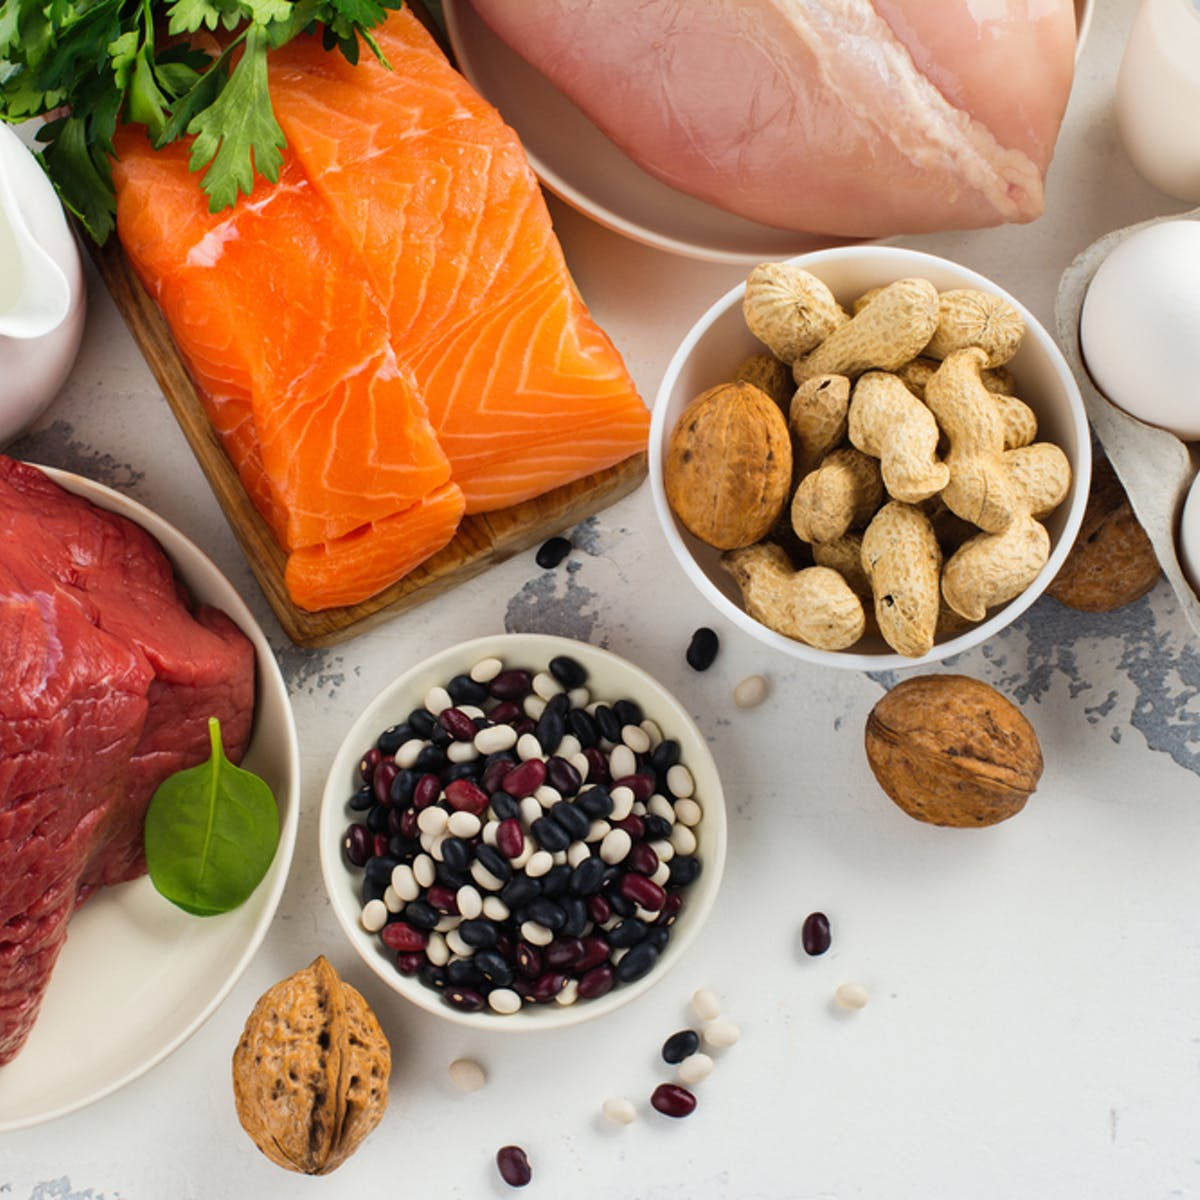 Low carb, Paleo or fasting – which diet is best?